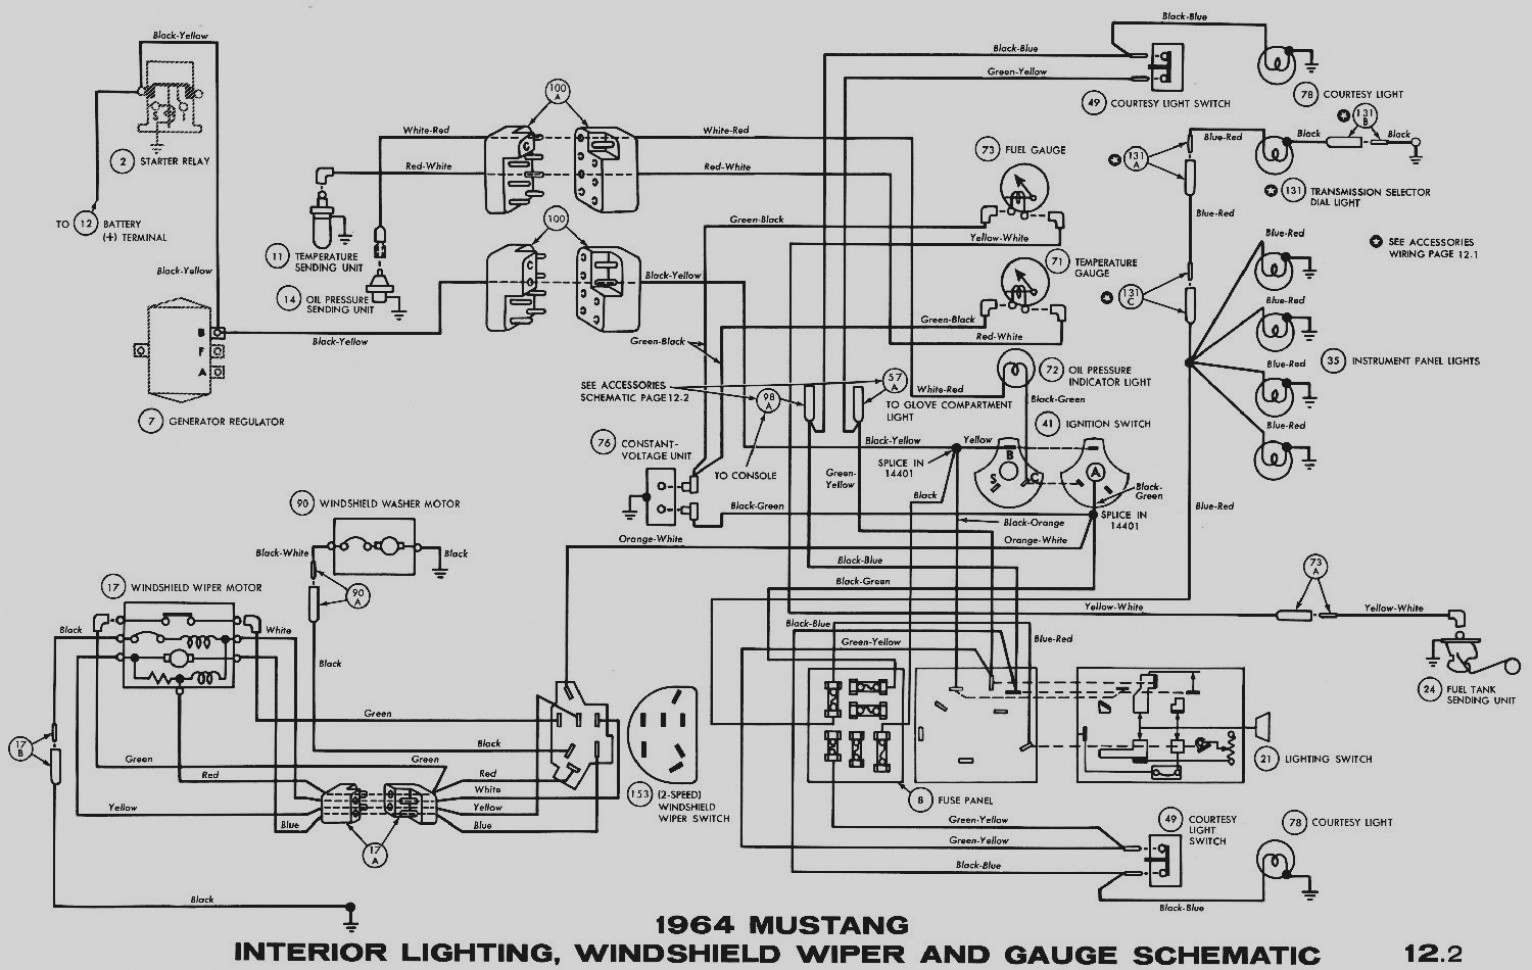 1970 mustang engine diagram wiring diagram official1970 mustang radio wiring wiring diagram g81970 mustang radio wiring diagram schematic diagram 1965 mustang wiring